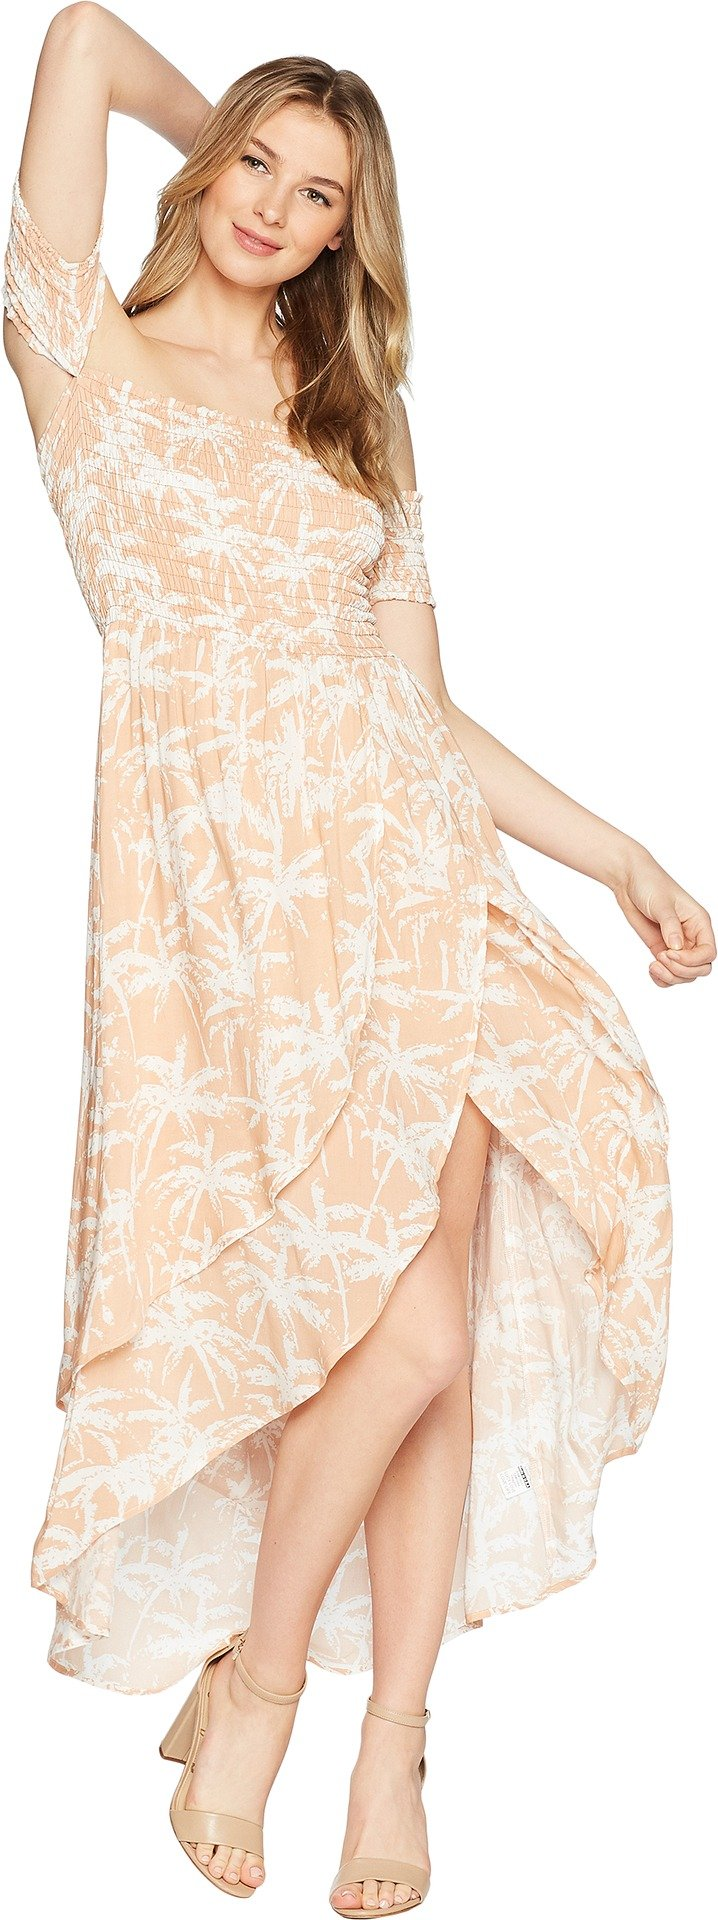 Lucy Love Women's Barefoot Dress Nude Small